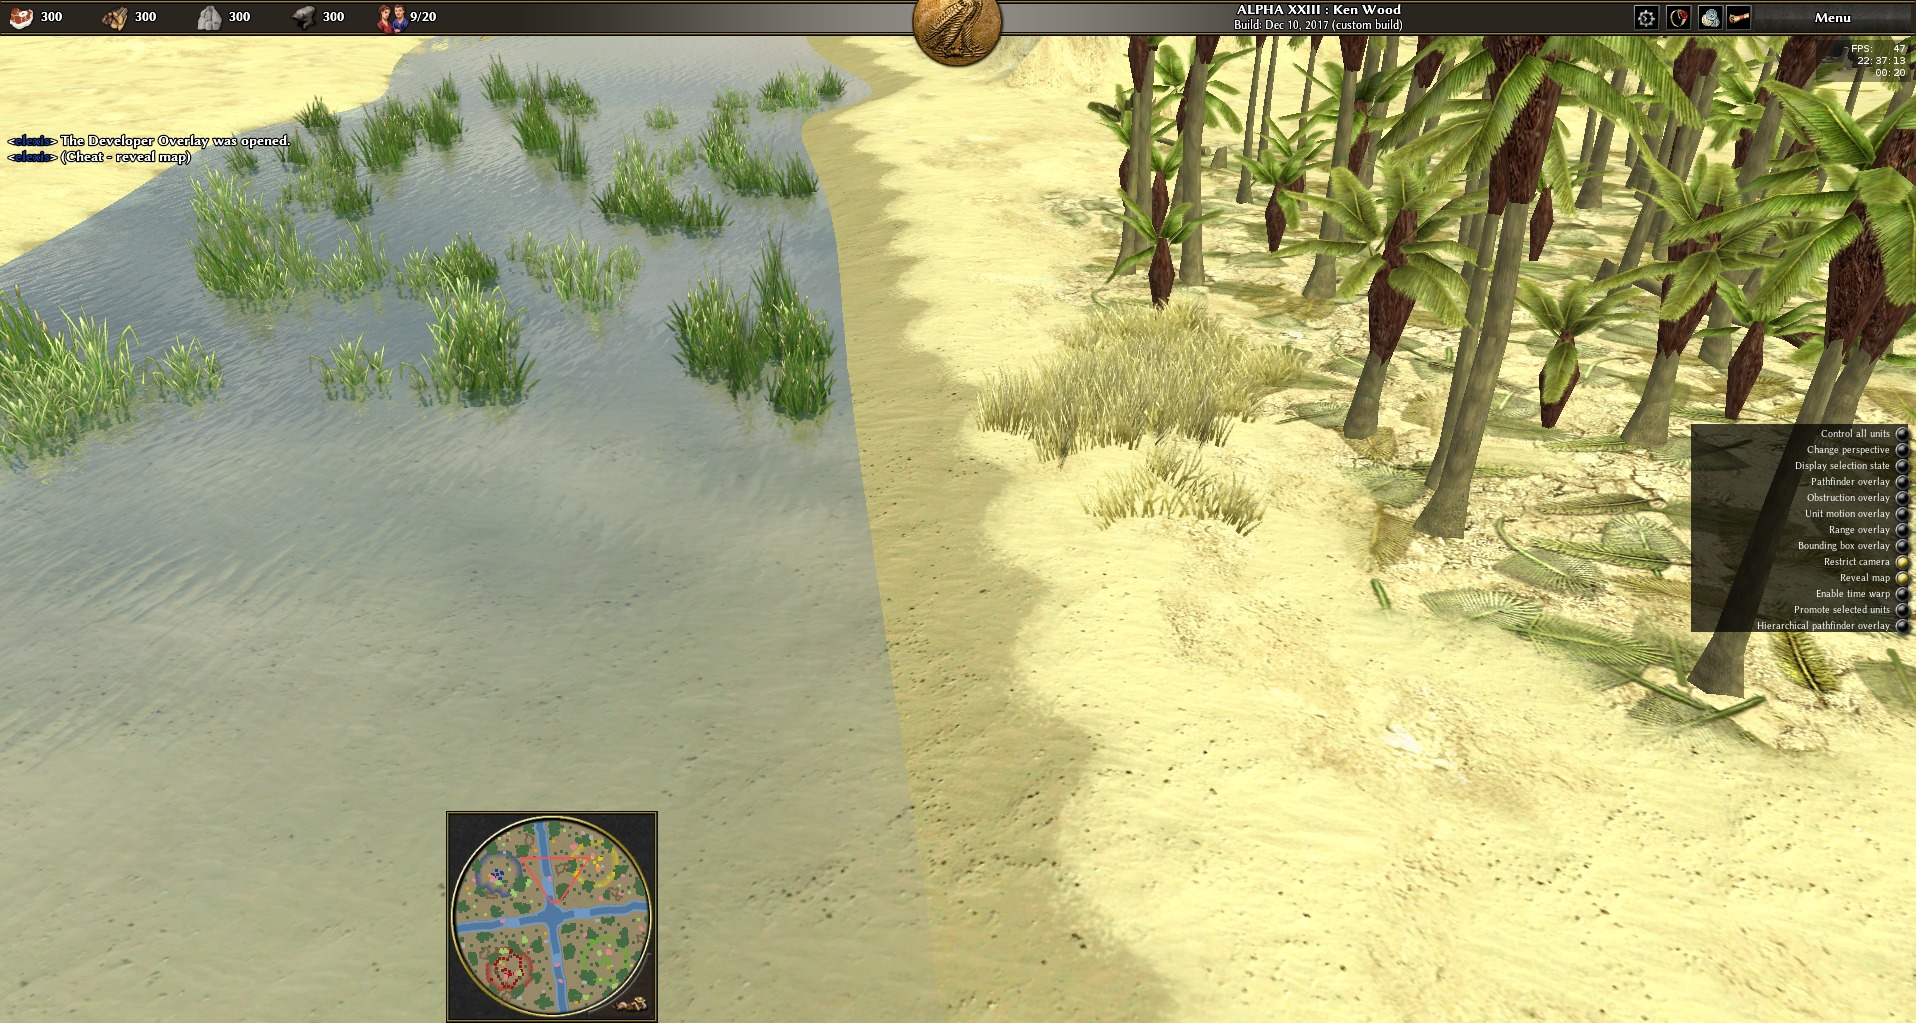 How to make a tiled map like the one used in Age of Empires